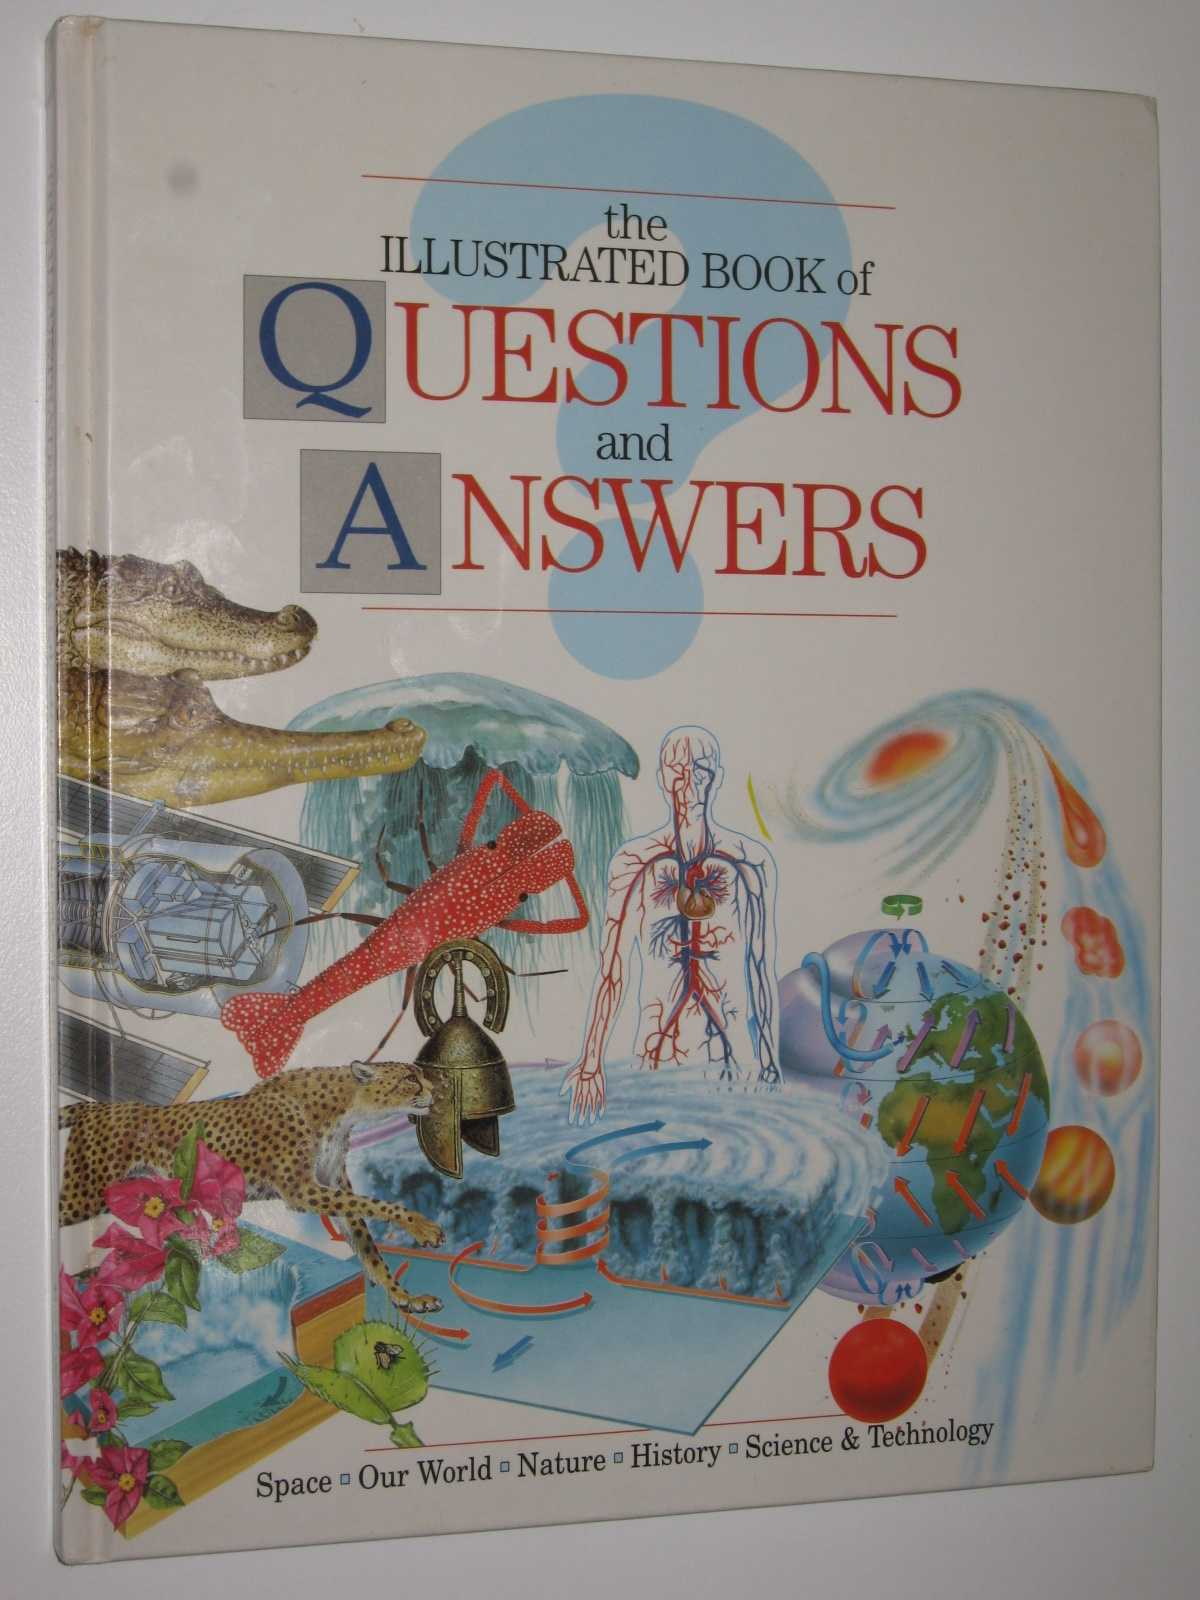 The Illustrated Book of Questions and Answers, Langley, Andrew